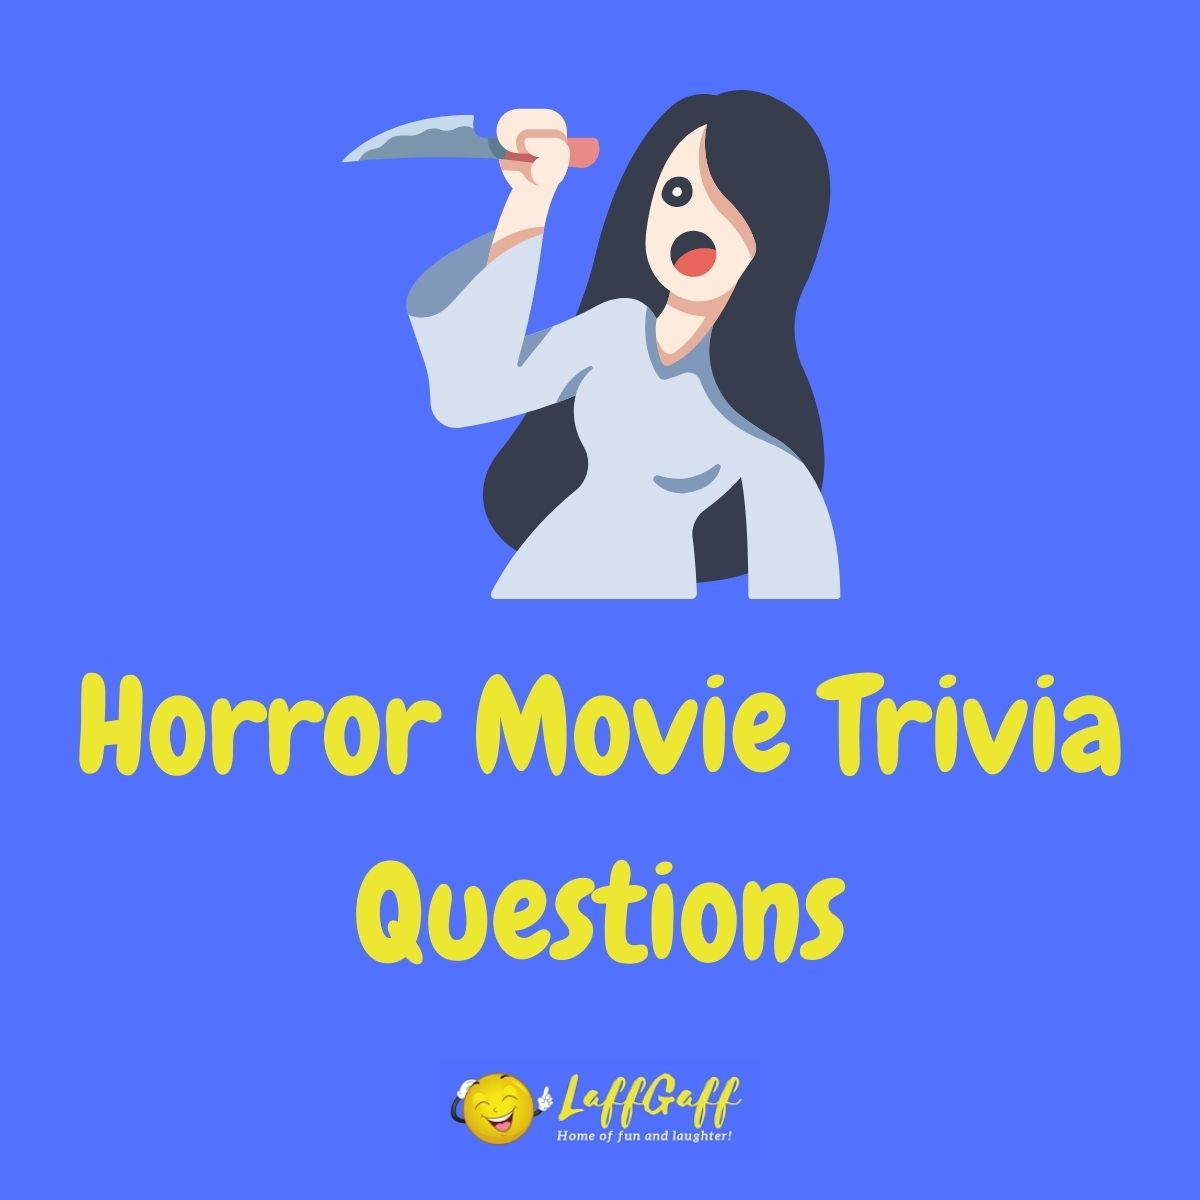 Featured image for a page of horror movie trivia questions and answers.